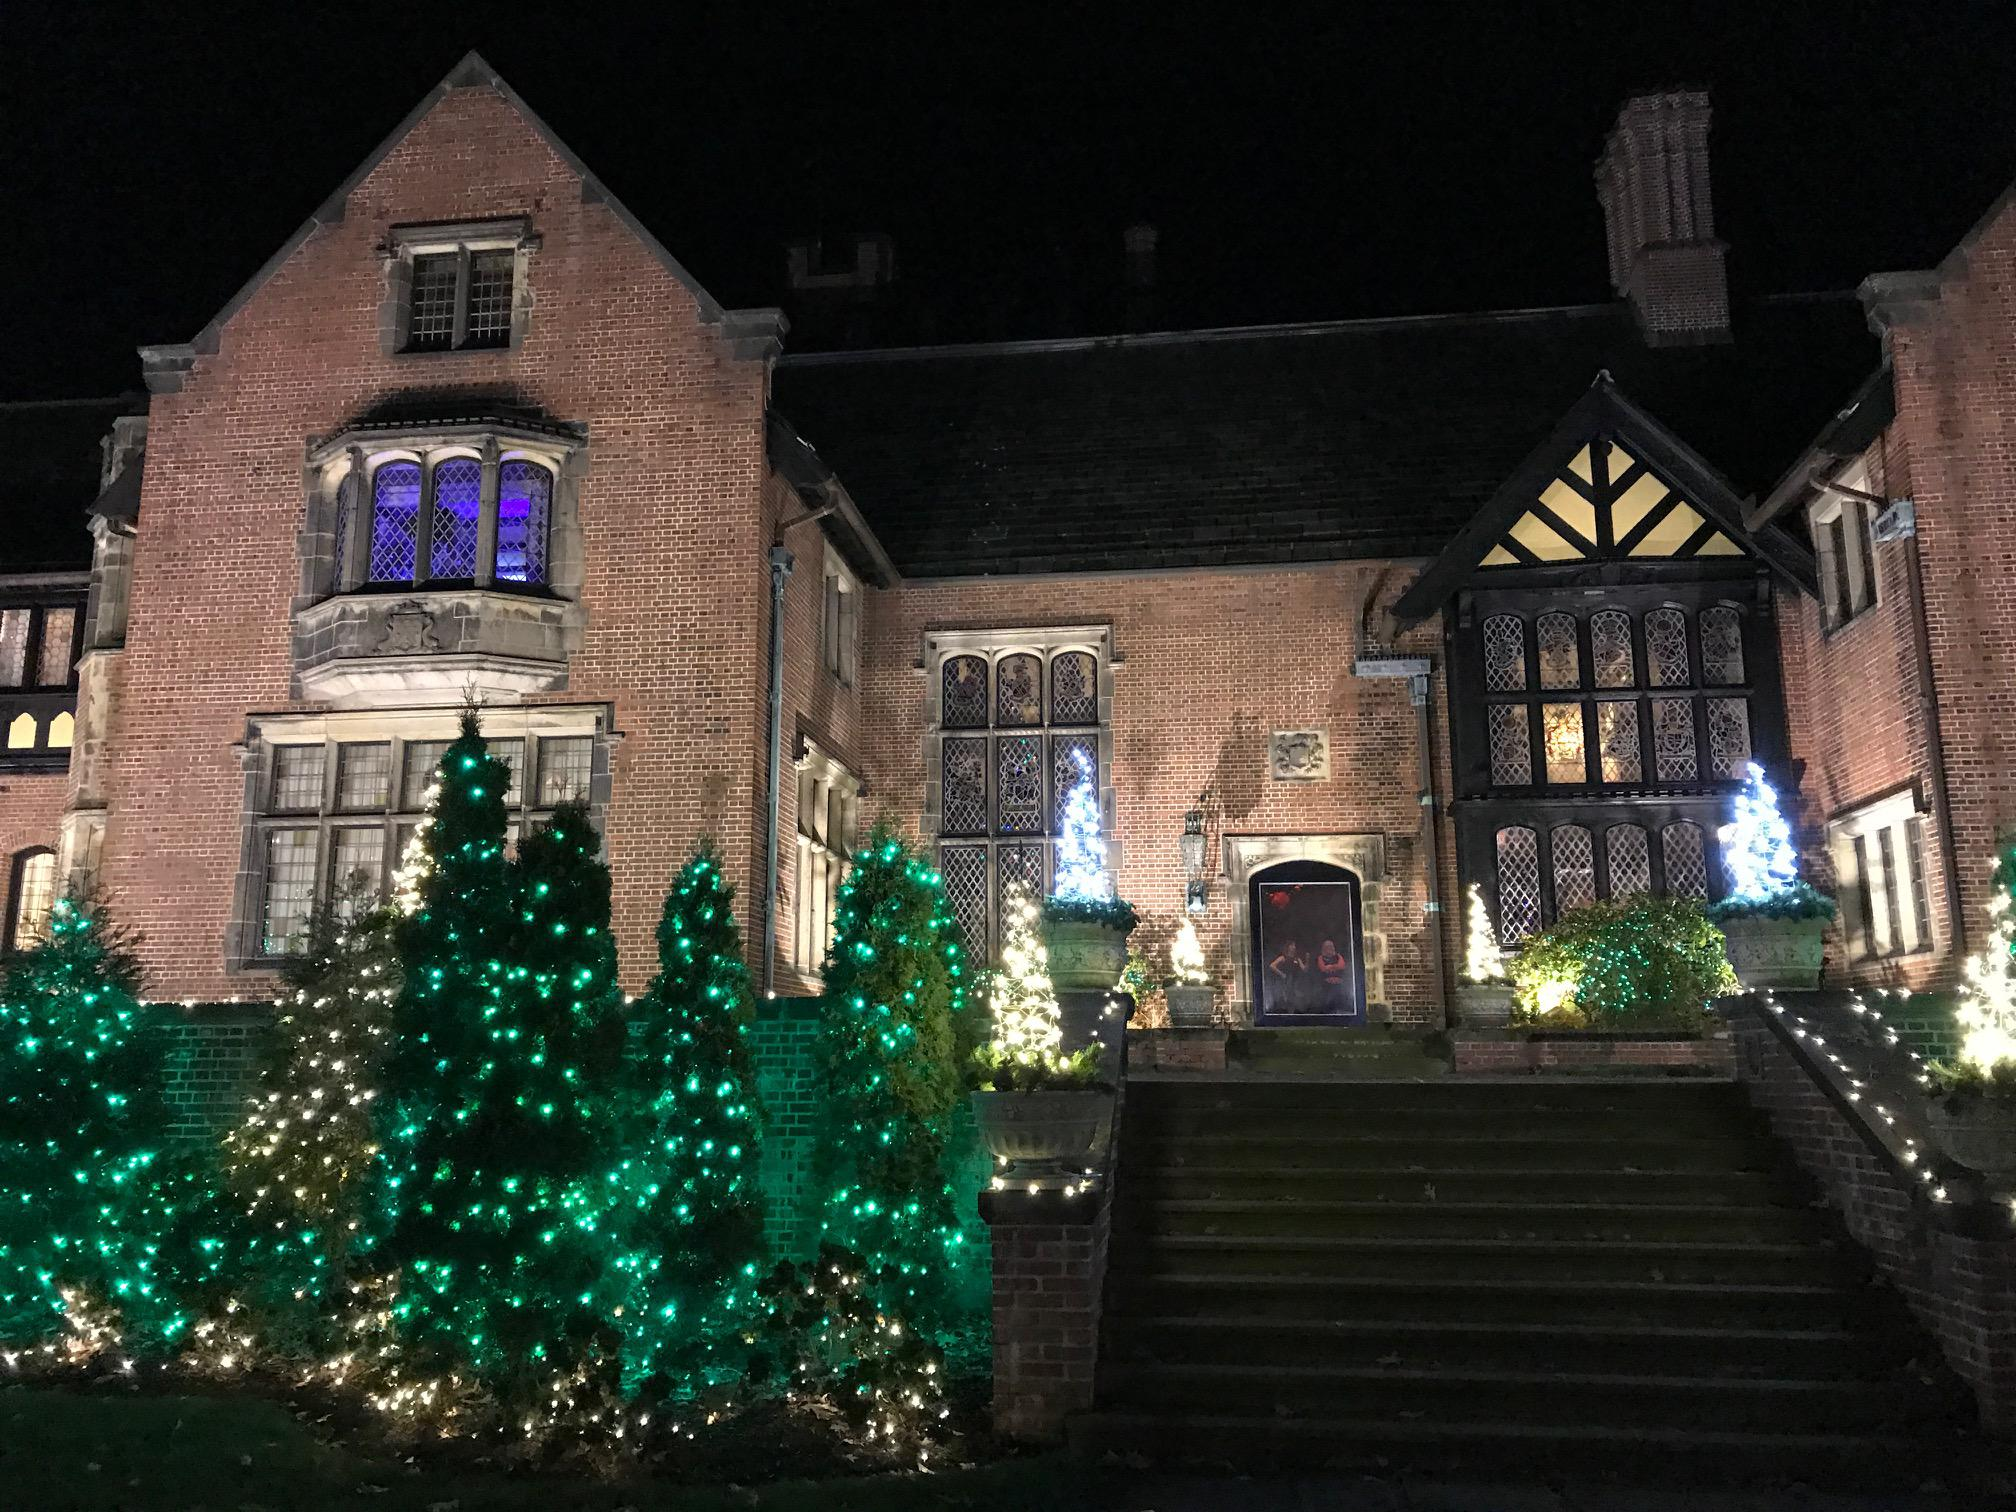 Stan Hywet S Deck The Hall Holiday Event Takes A Classic Comic Book Turn News Ideastream